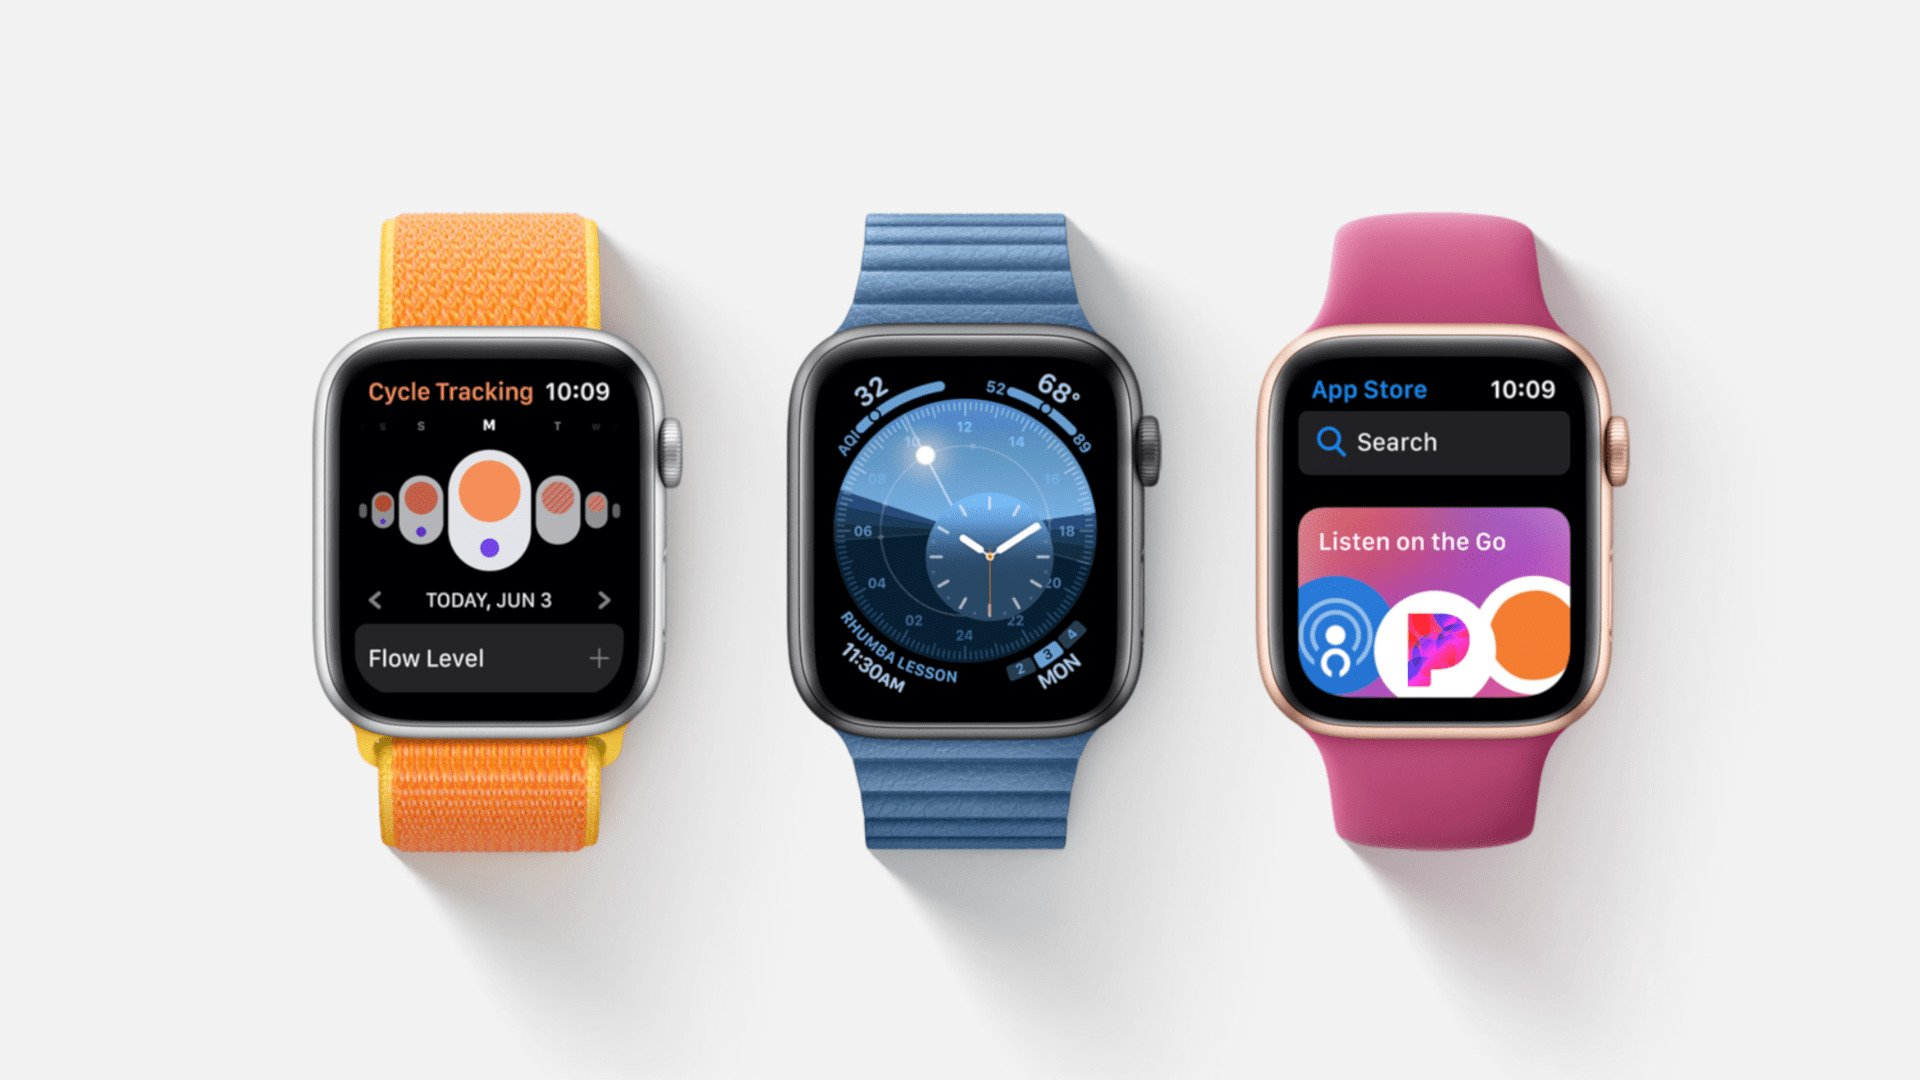 Apple watchOS 6